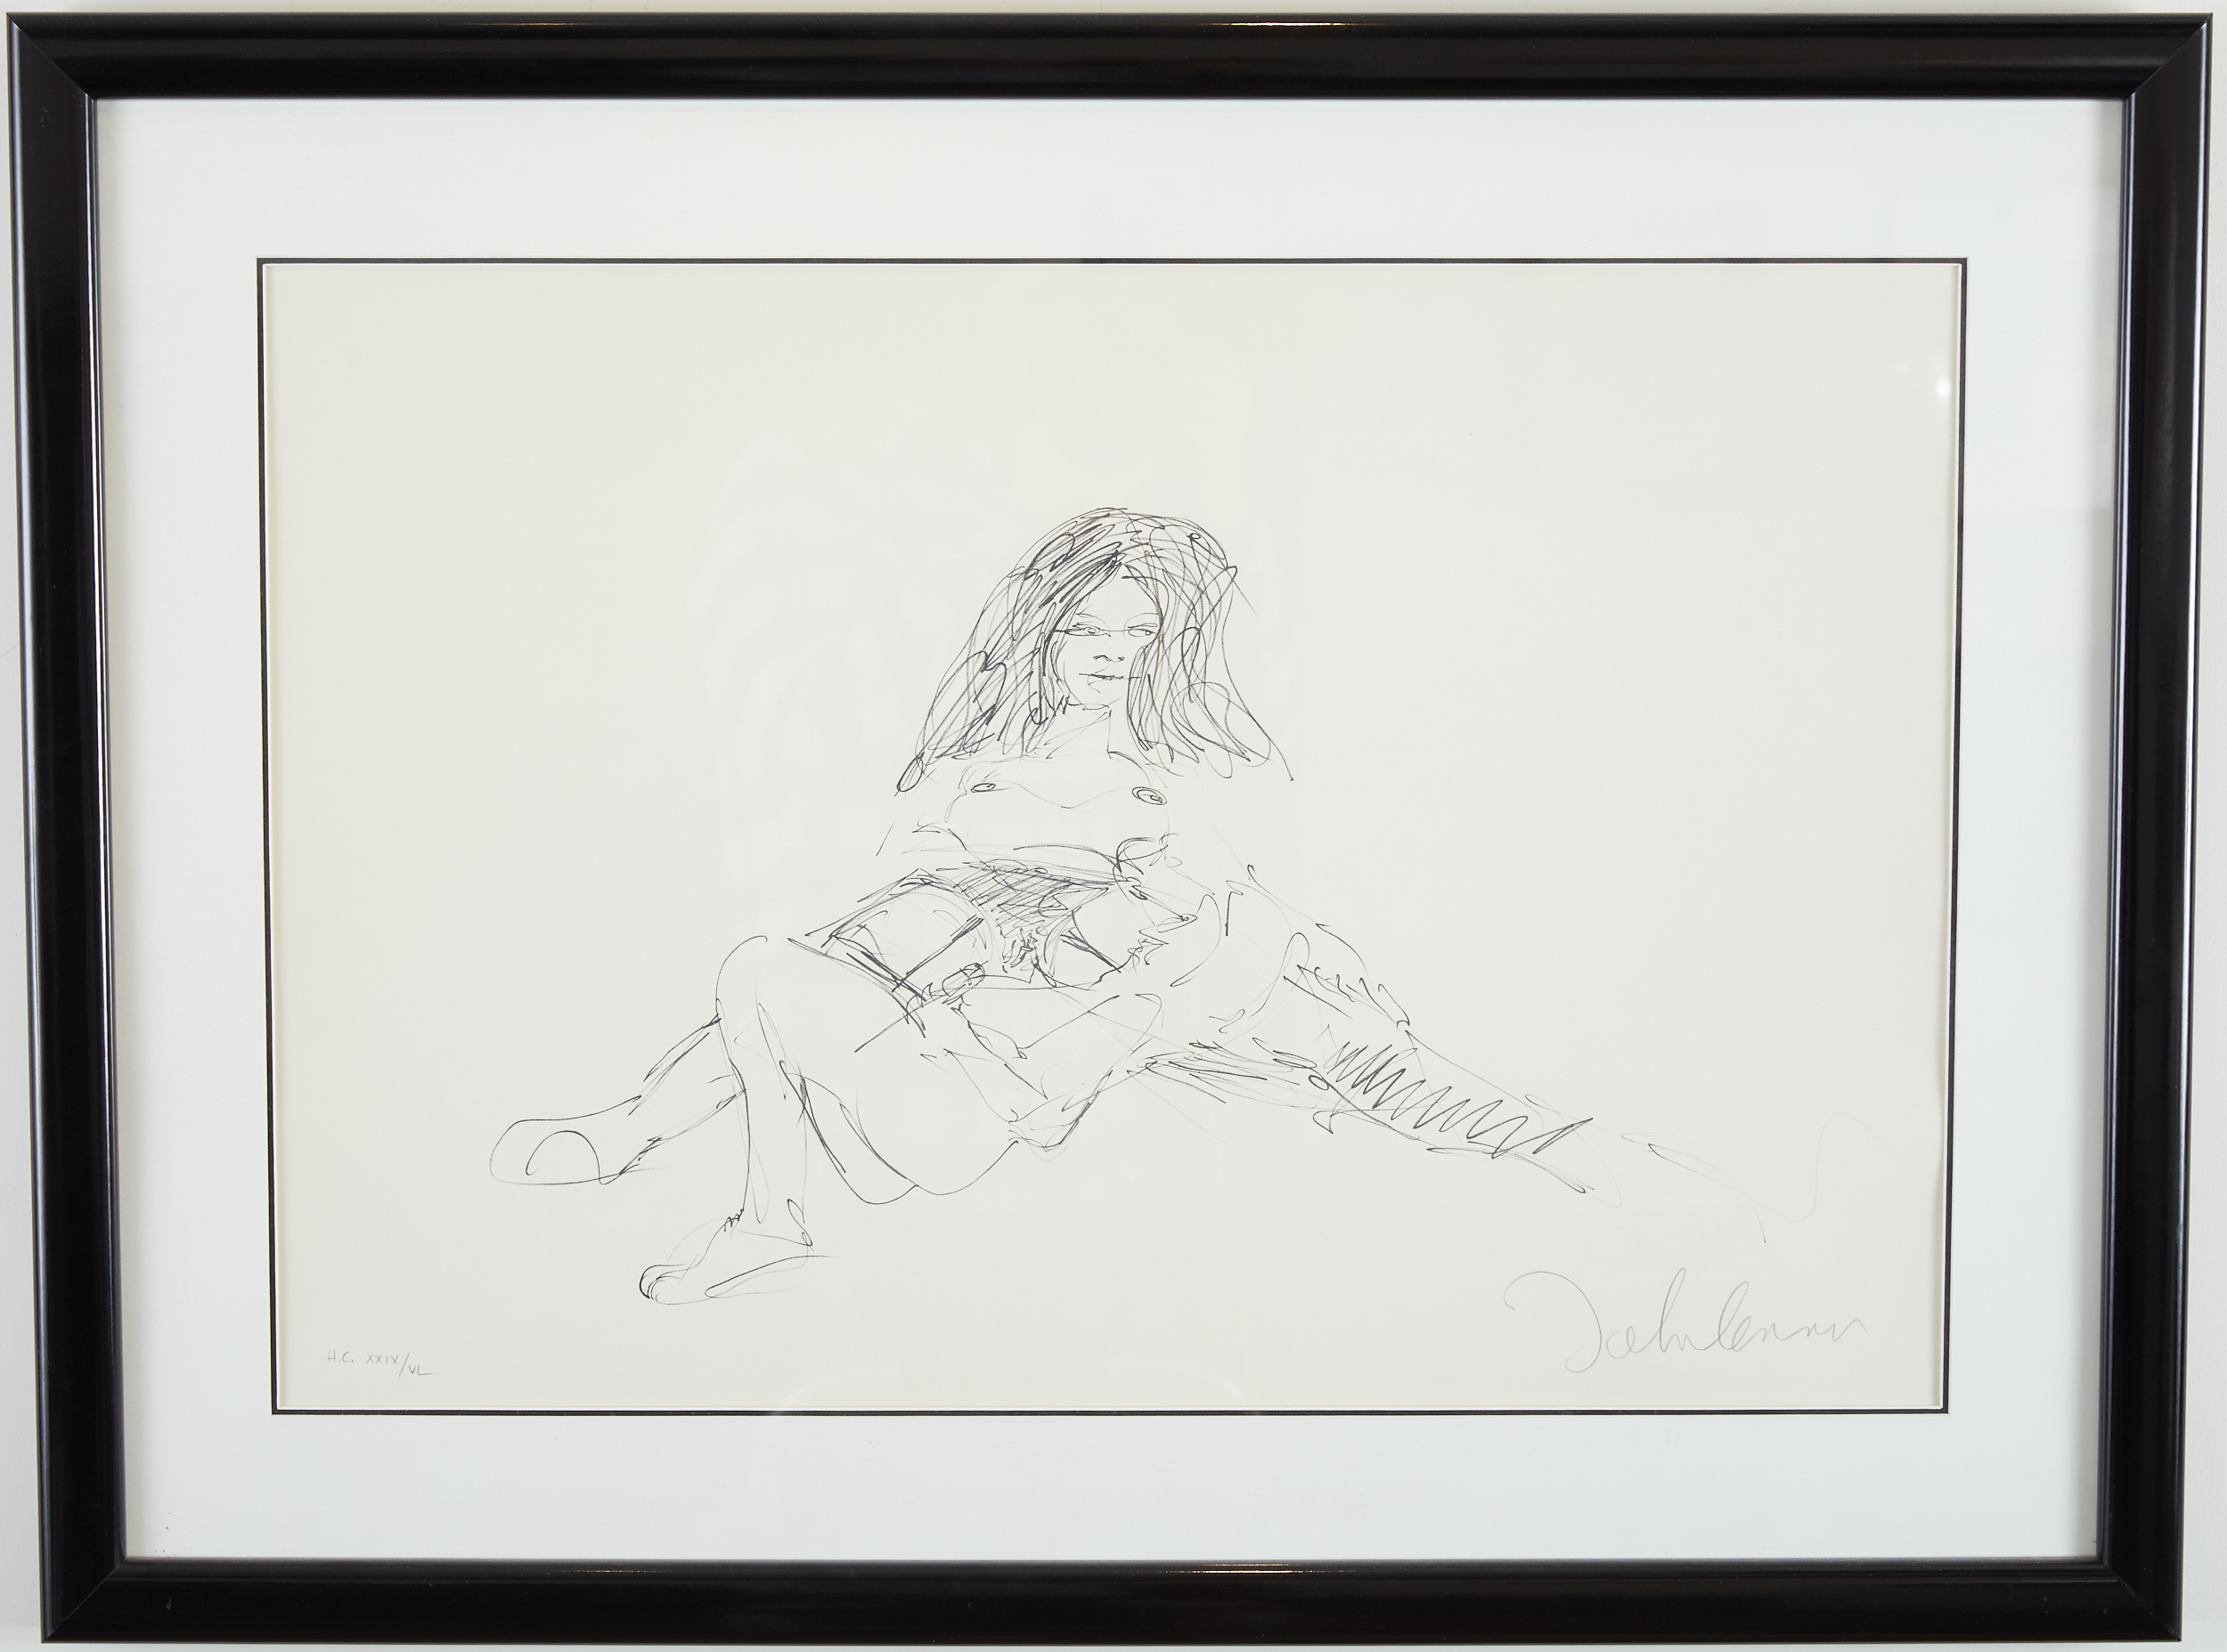 Lot 46 - John Lennon Erotic #1 Pencil Signed Lithograph Beatles